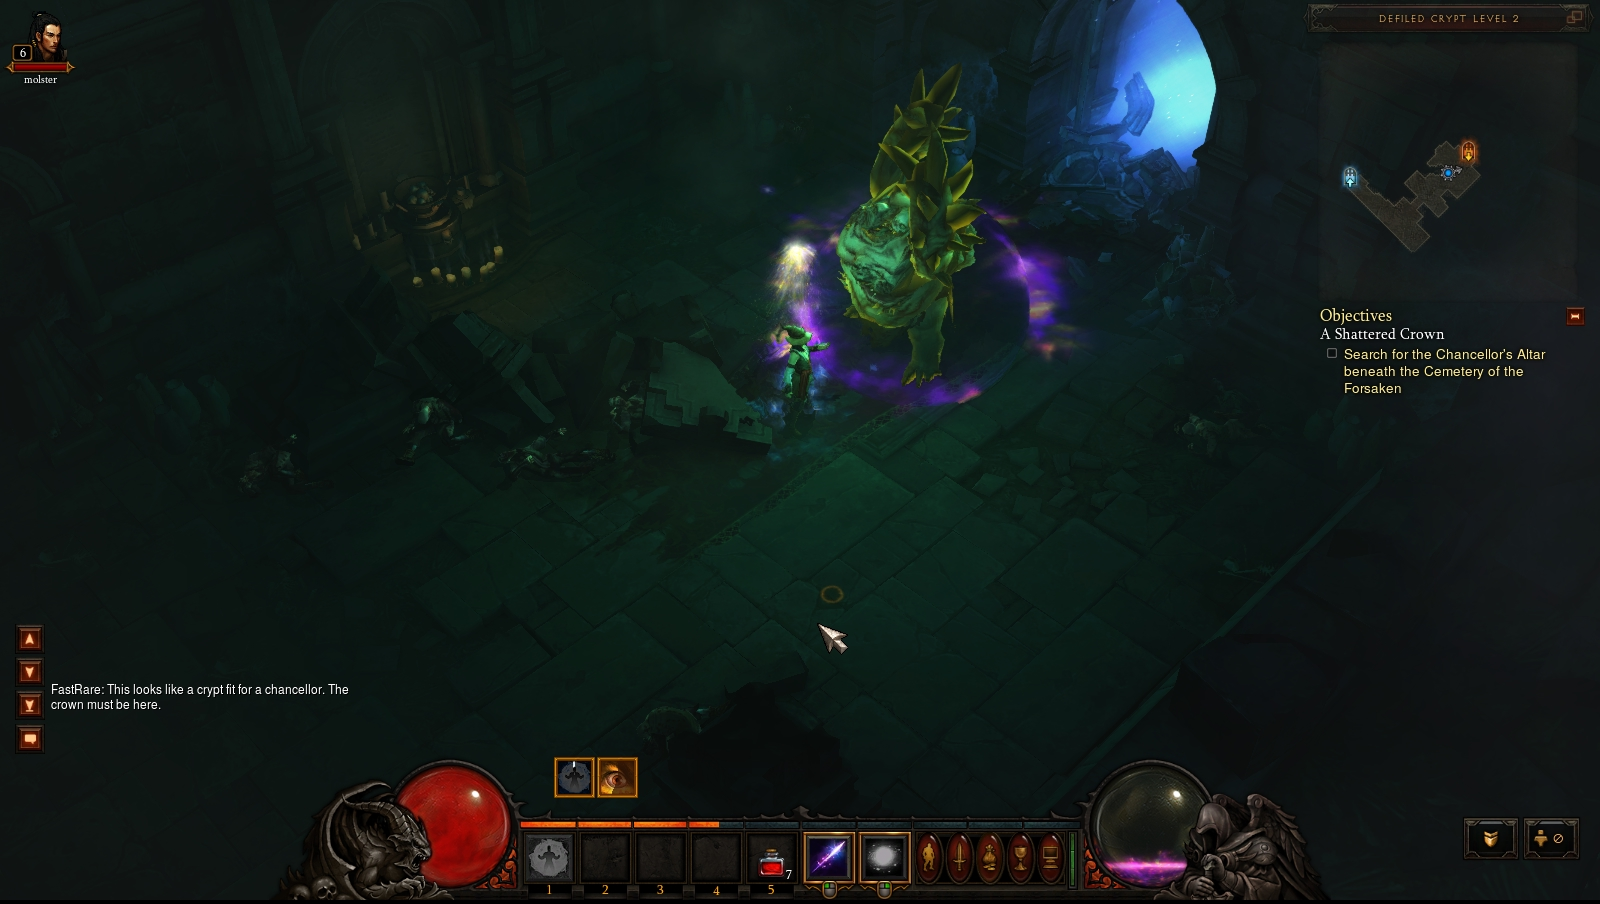 Diablo 3: When Does Season 13 Begin? Heavycom